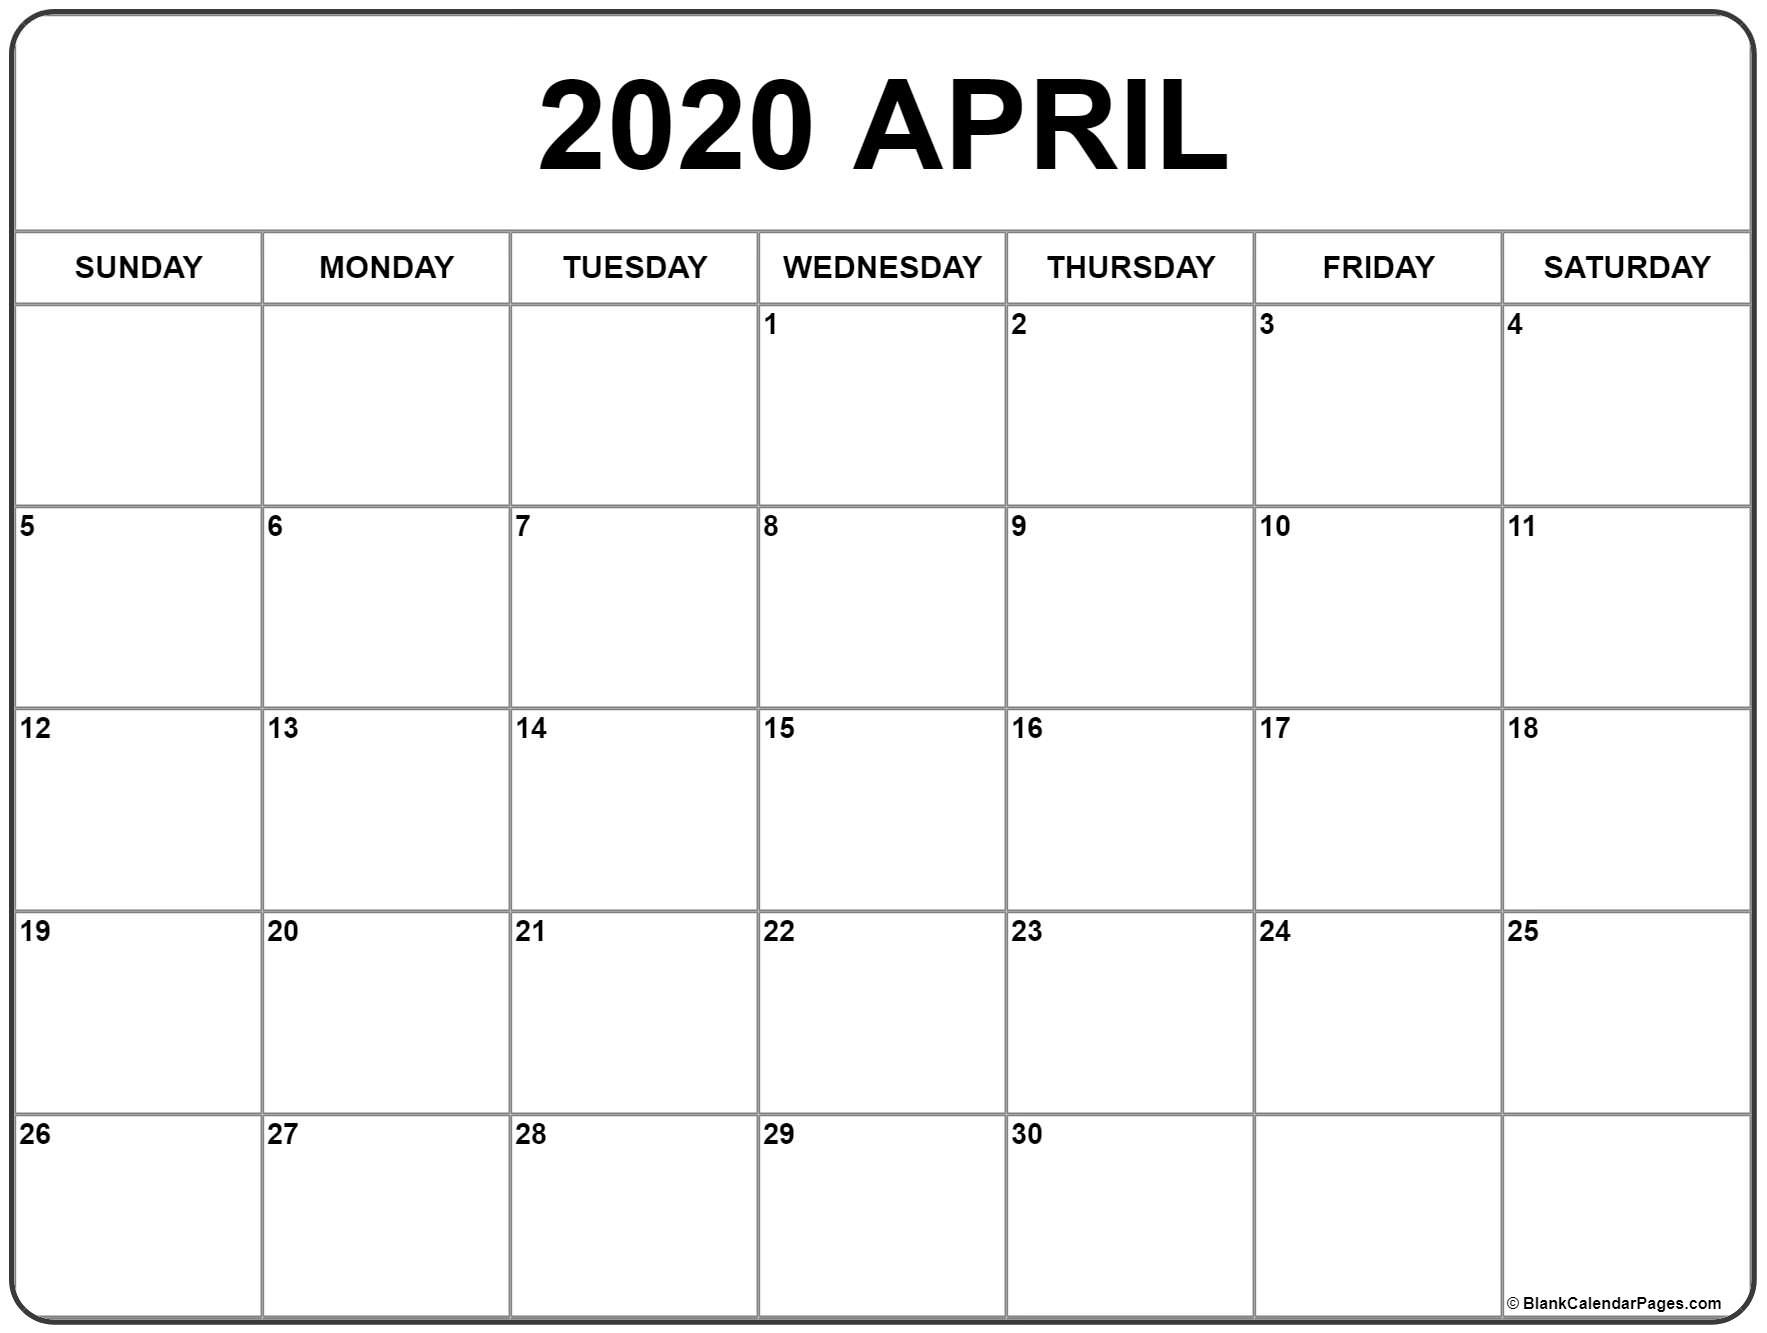 April 2020 Calendar | Free Printable Monthly Calendars-Blank Calendar 2020 Printable Monthly Payday Bills And Due Date